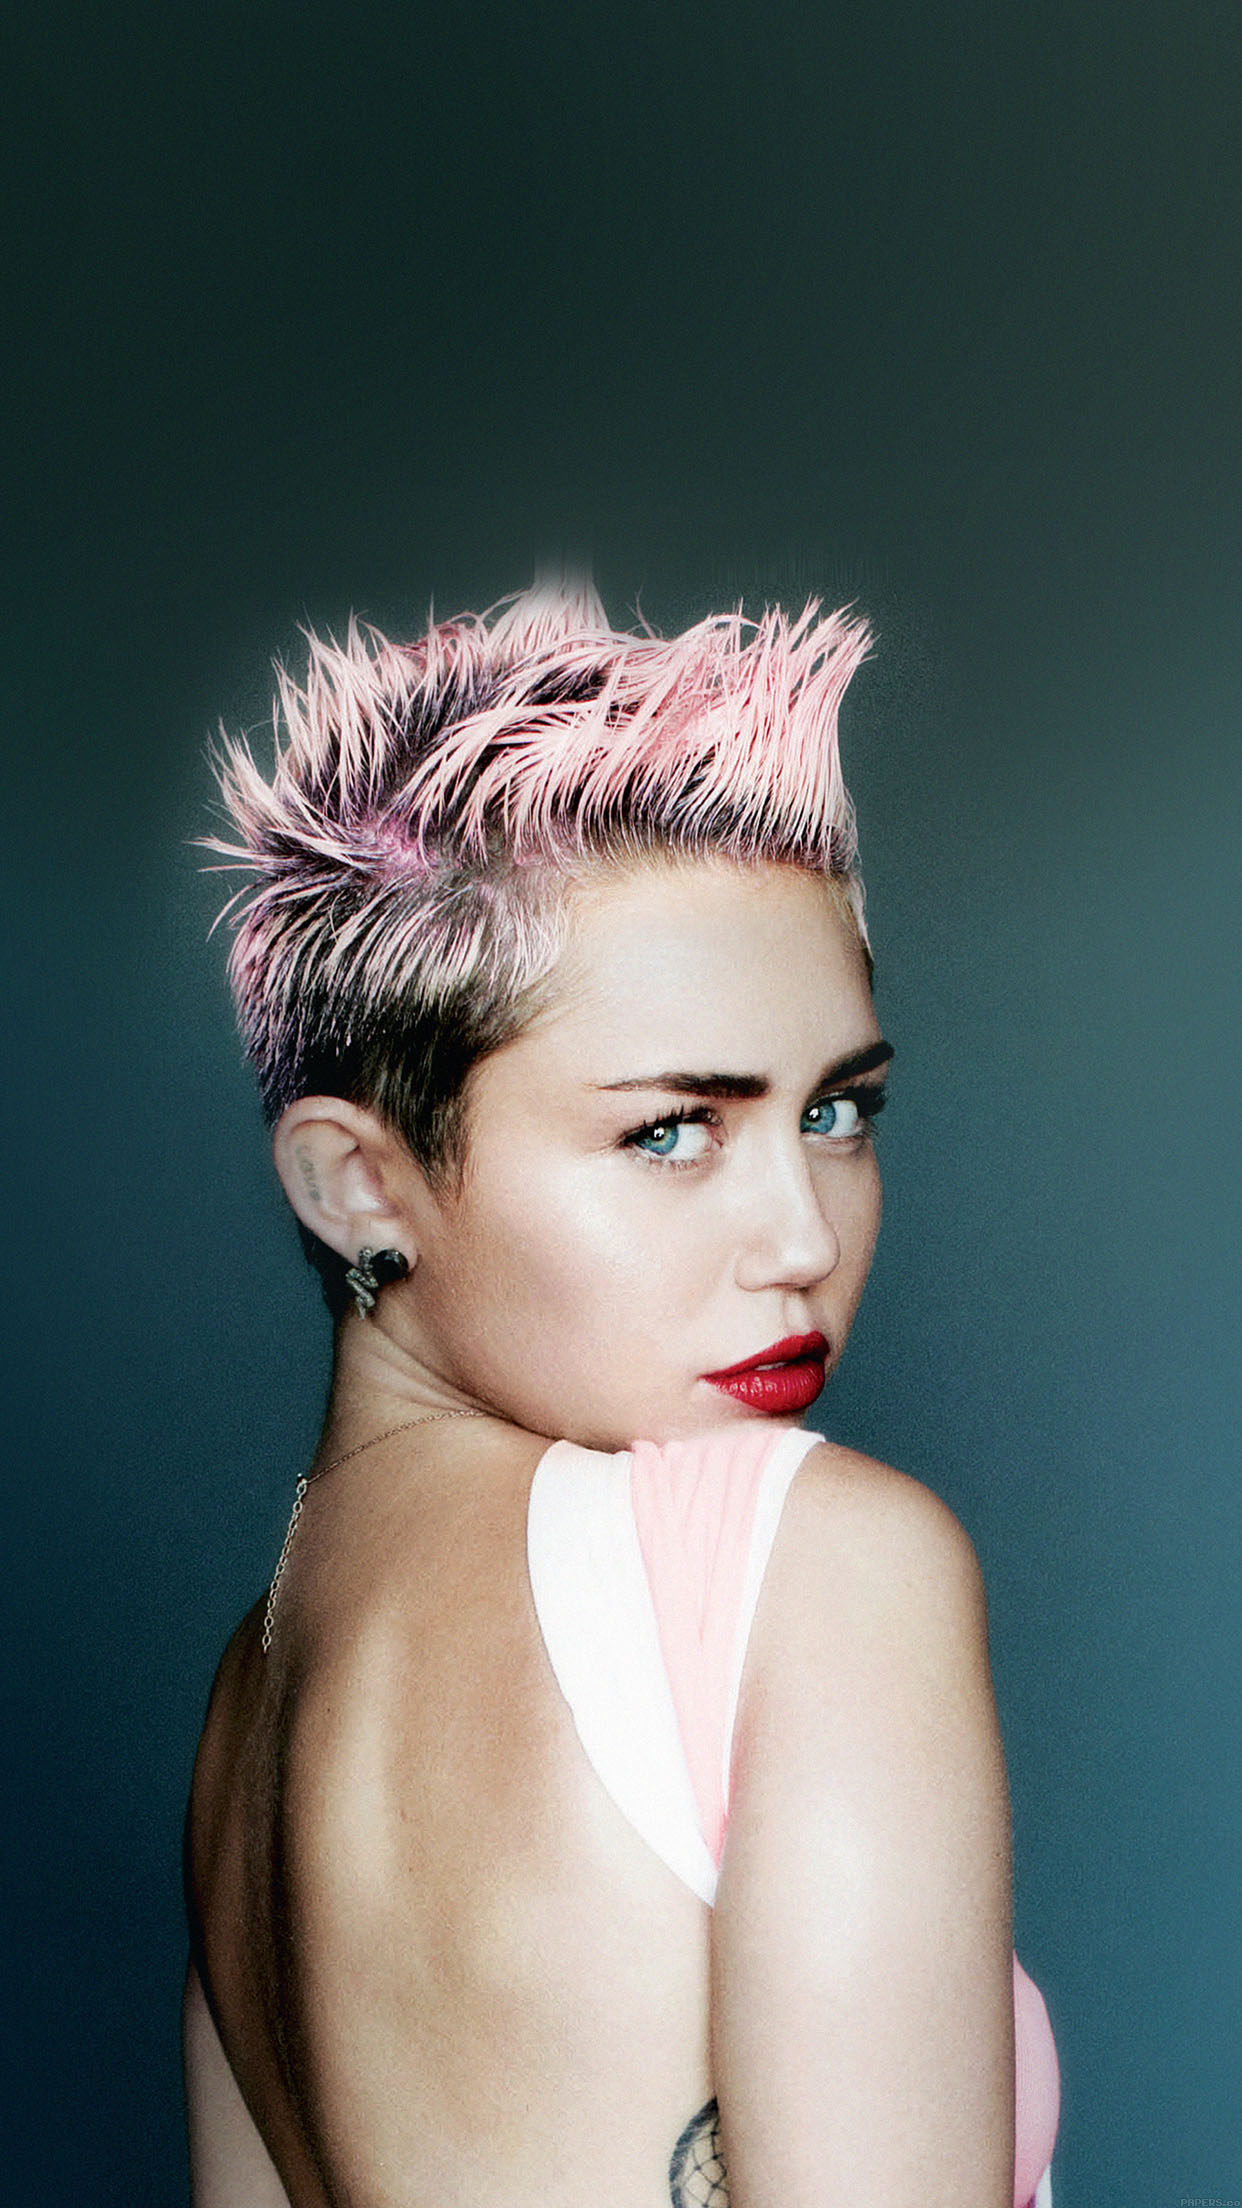 Iphone 6 Plus - Miley Cyrus , HD Wallpaper & Backgrounds